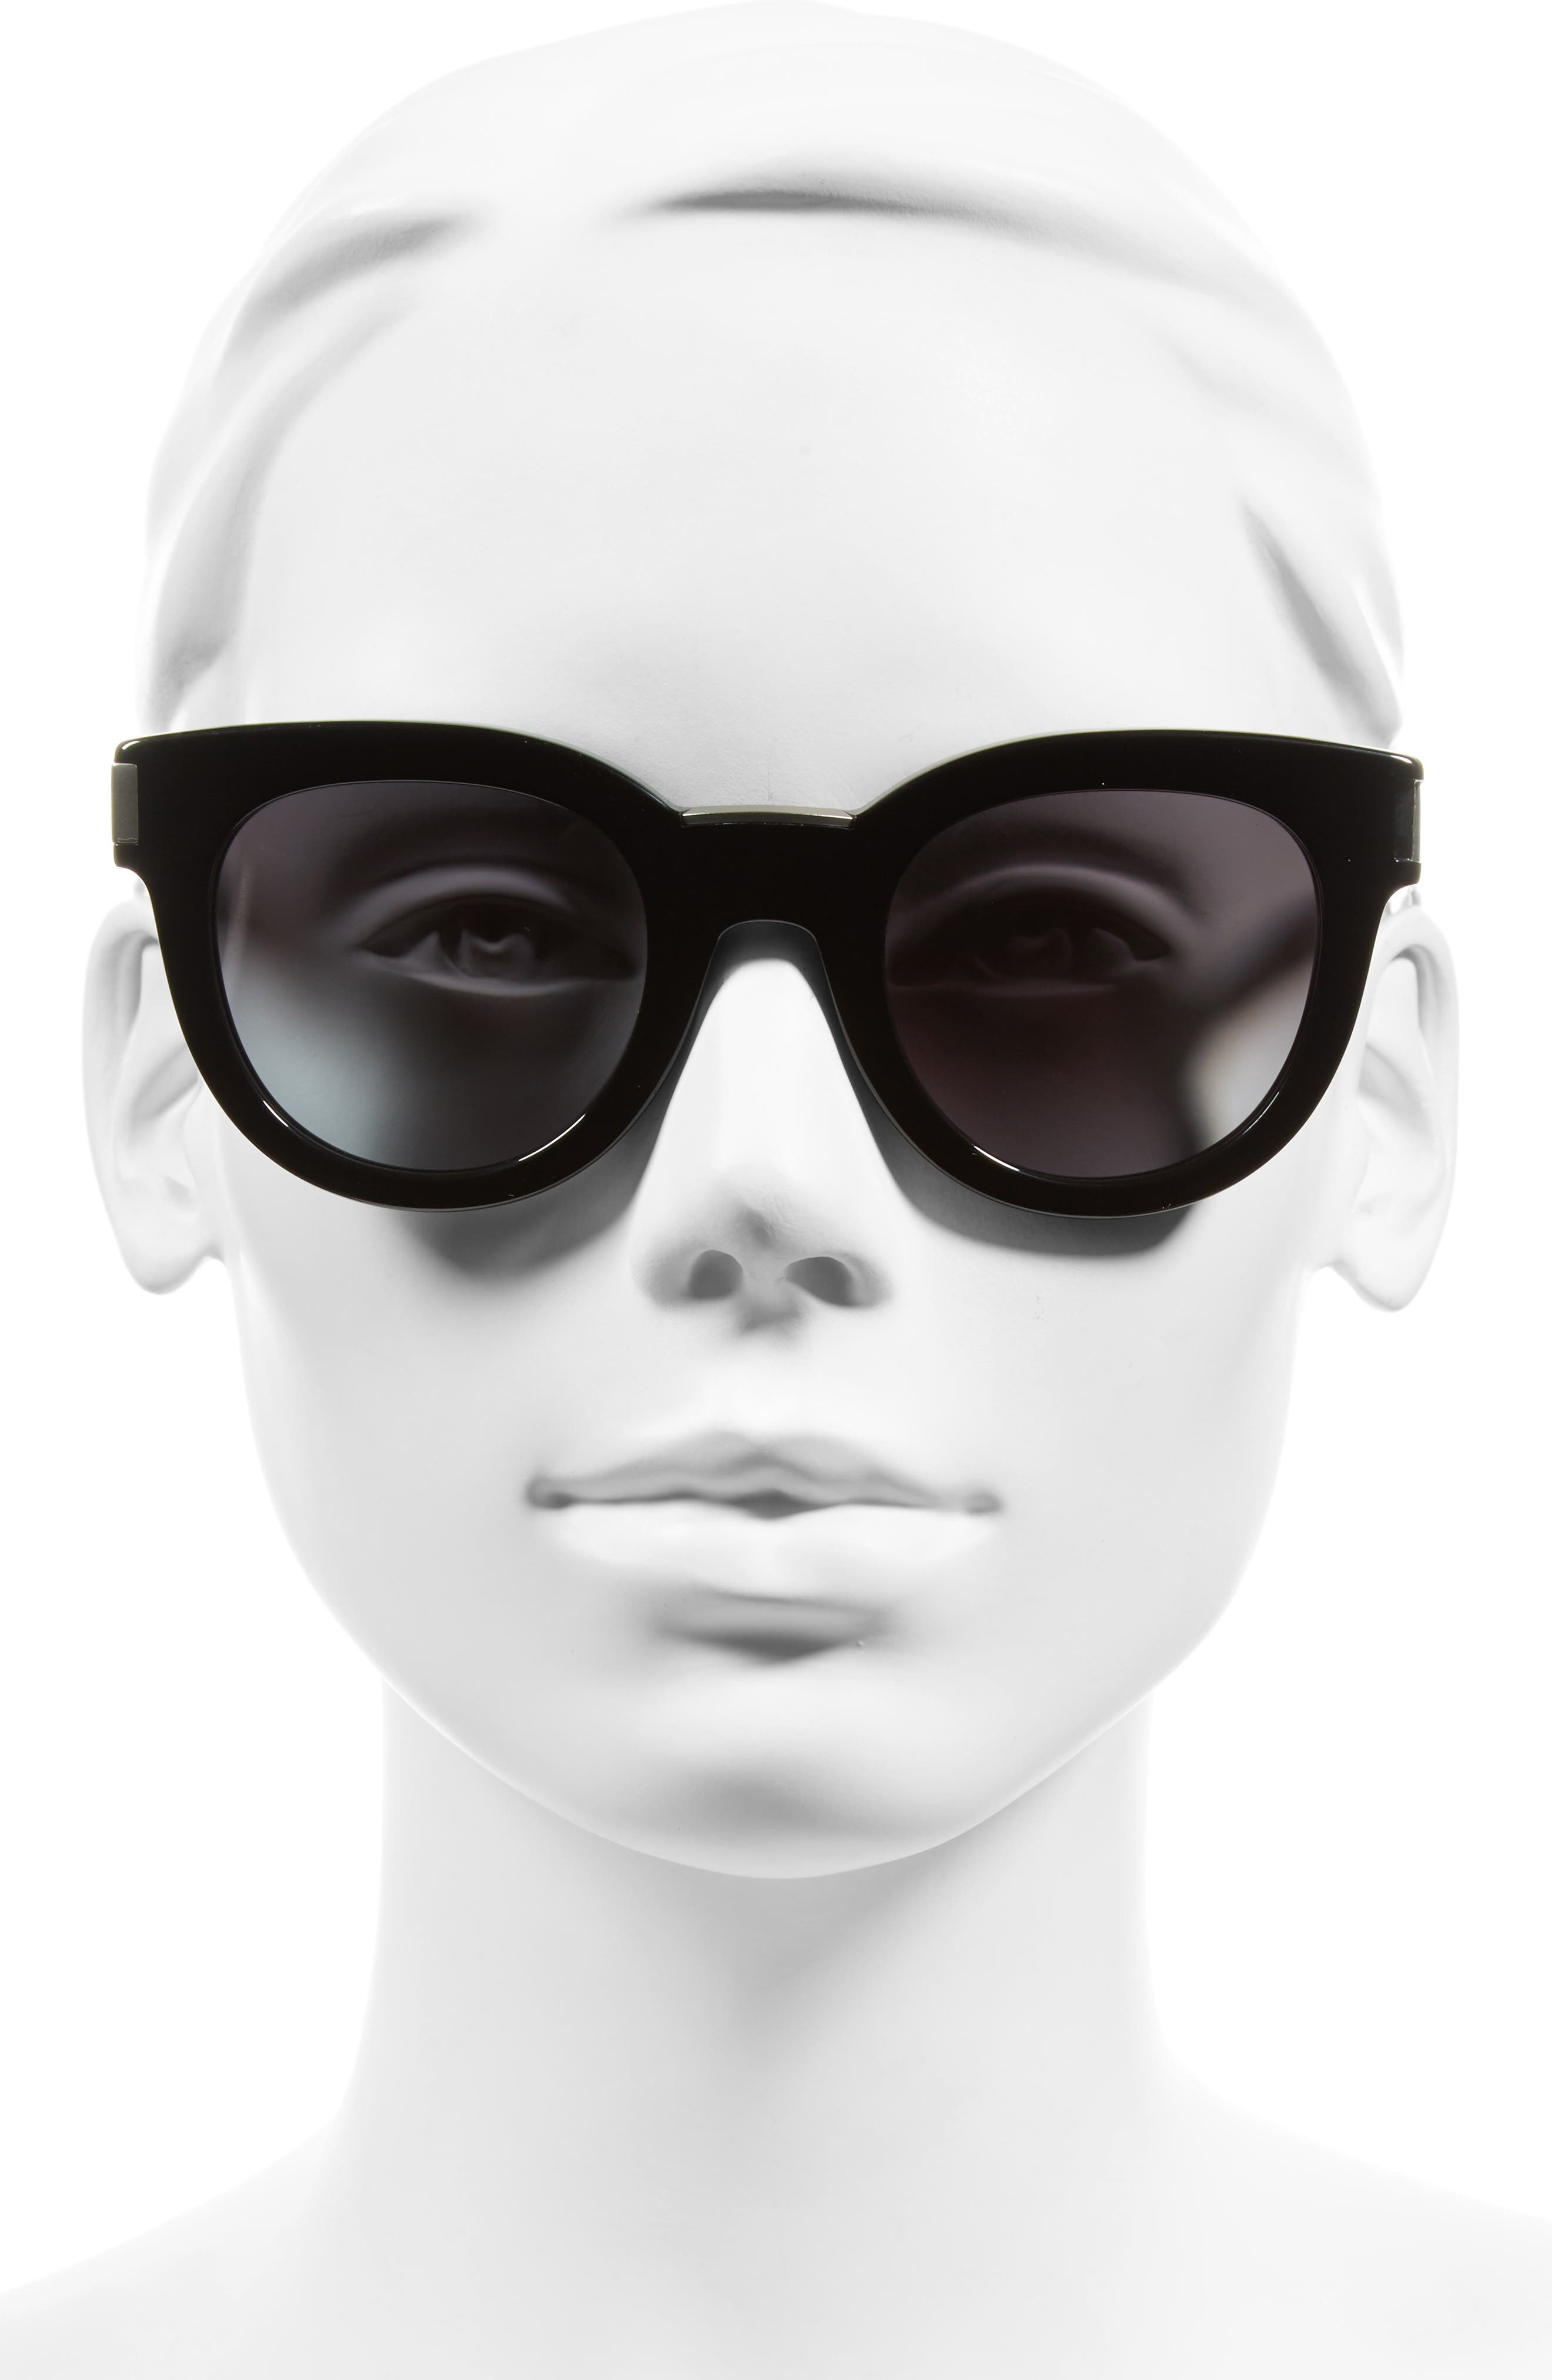 49mm Butterfly Sunglasses,                             Alternate thumbnail 3, color,                             001